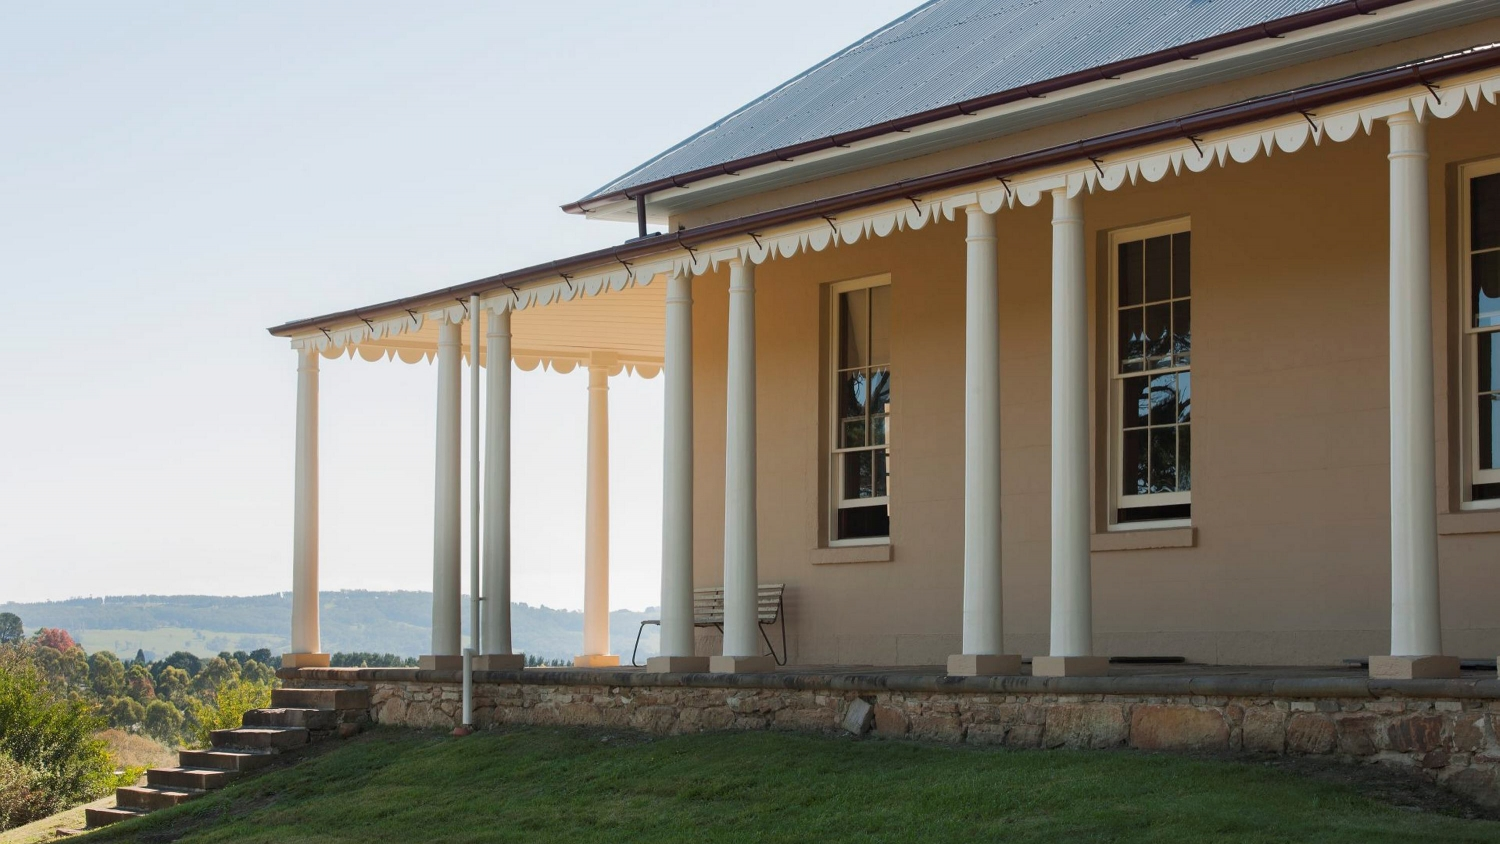 A house with wide verandah and white posts overlooks a grassy lawn and rolling hills in the distance